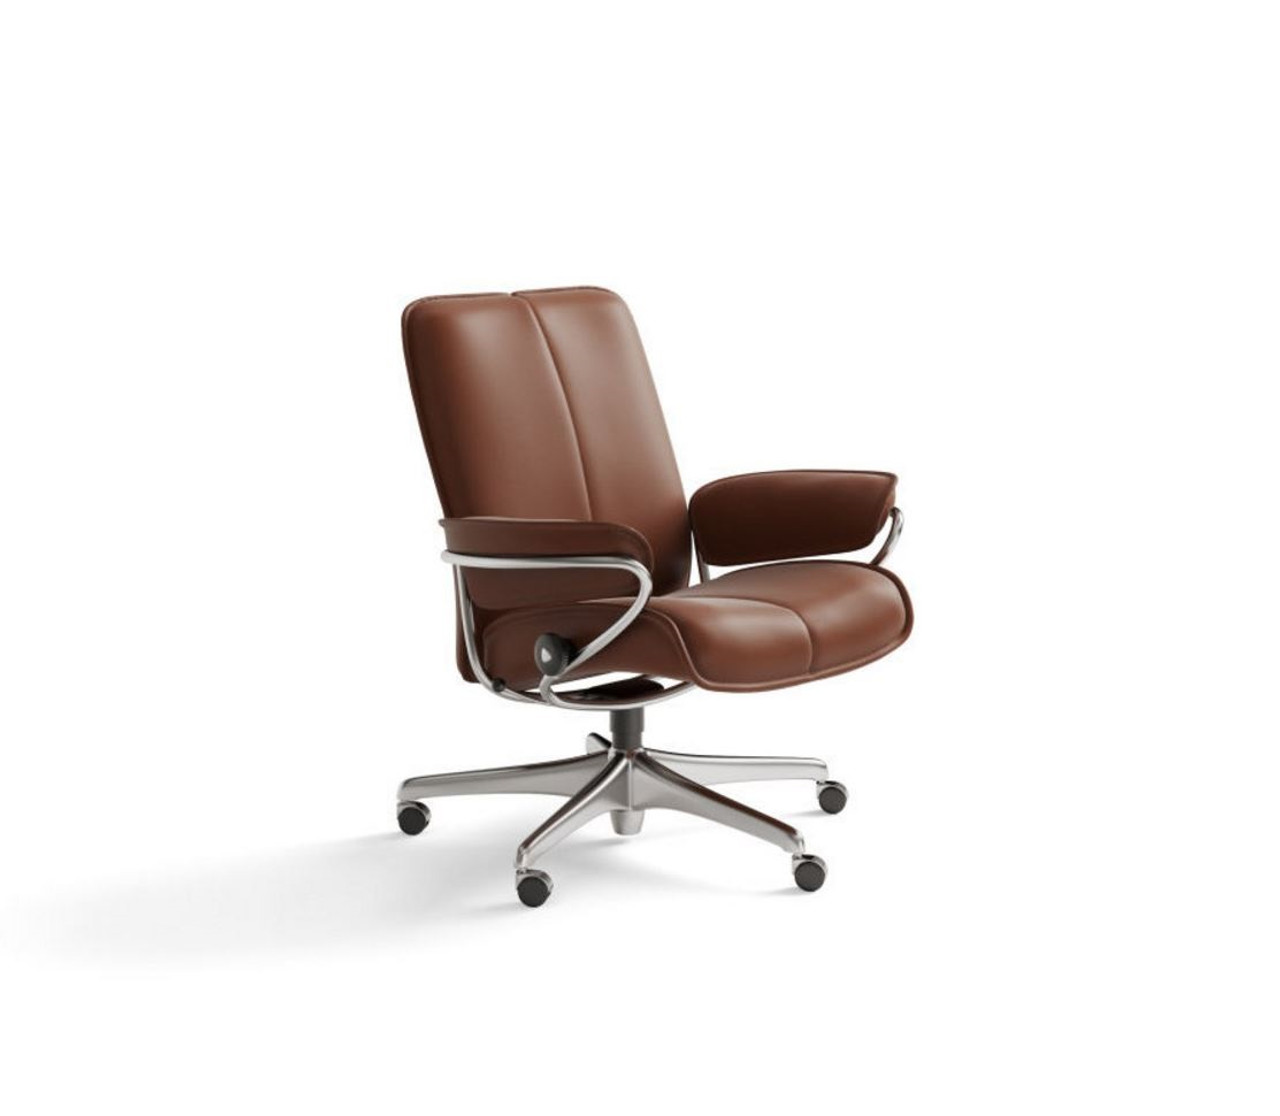 Stressless Nordic Legcomfort Stressless City Office Chair Low Back